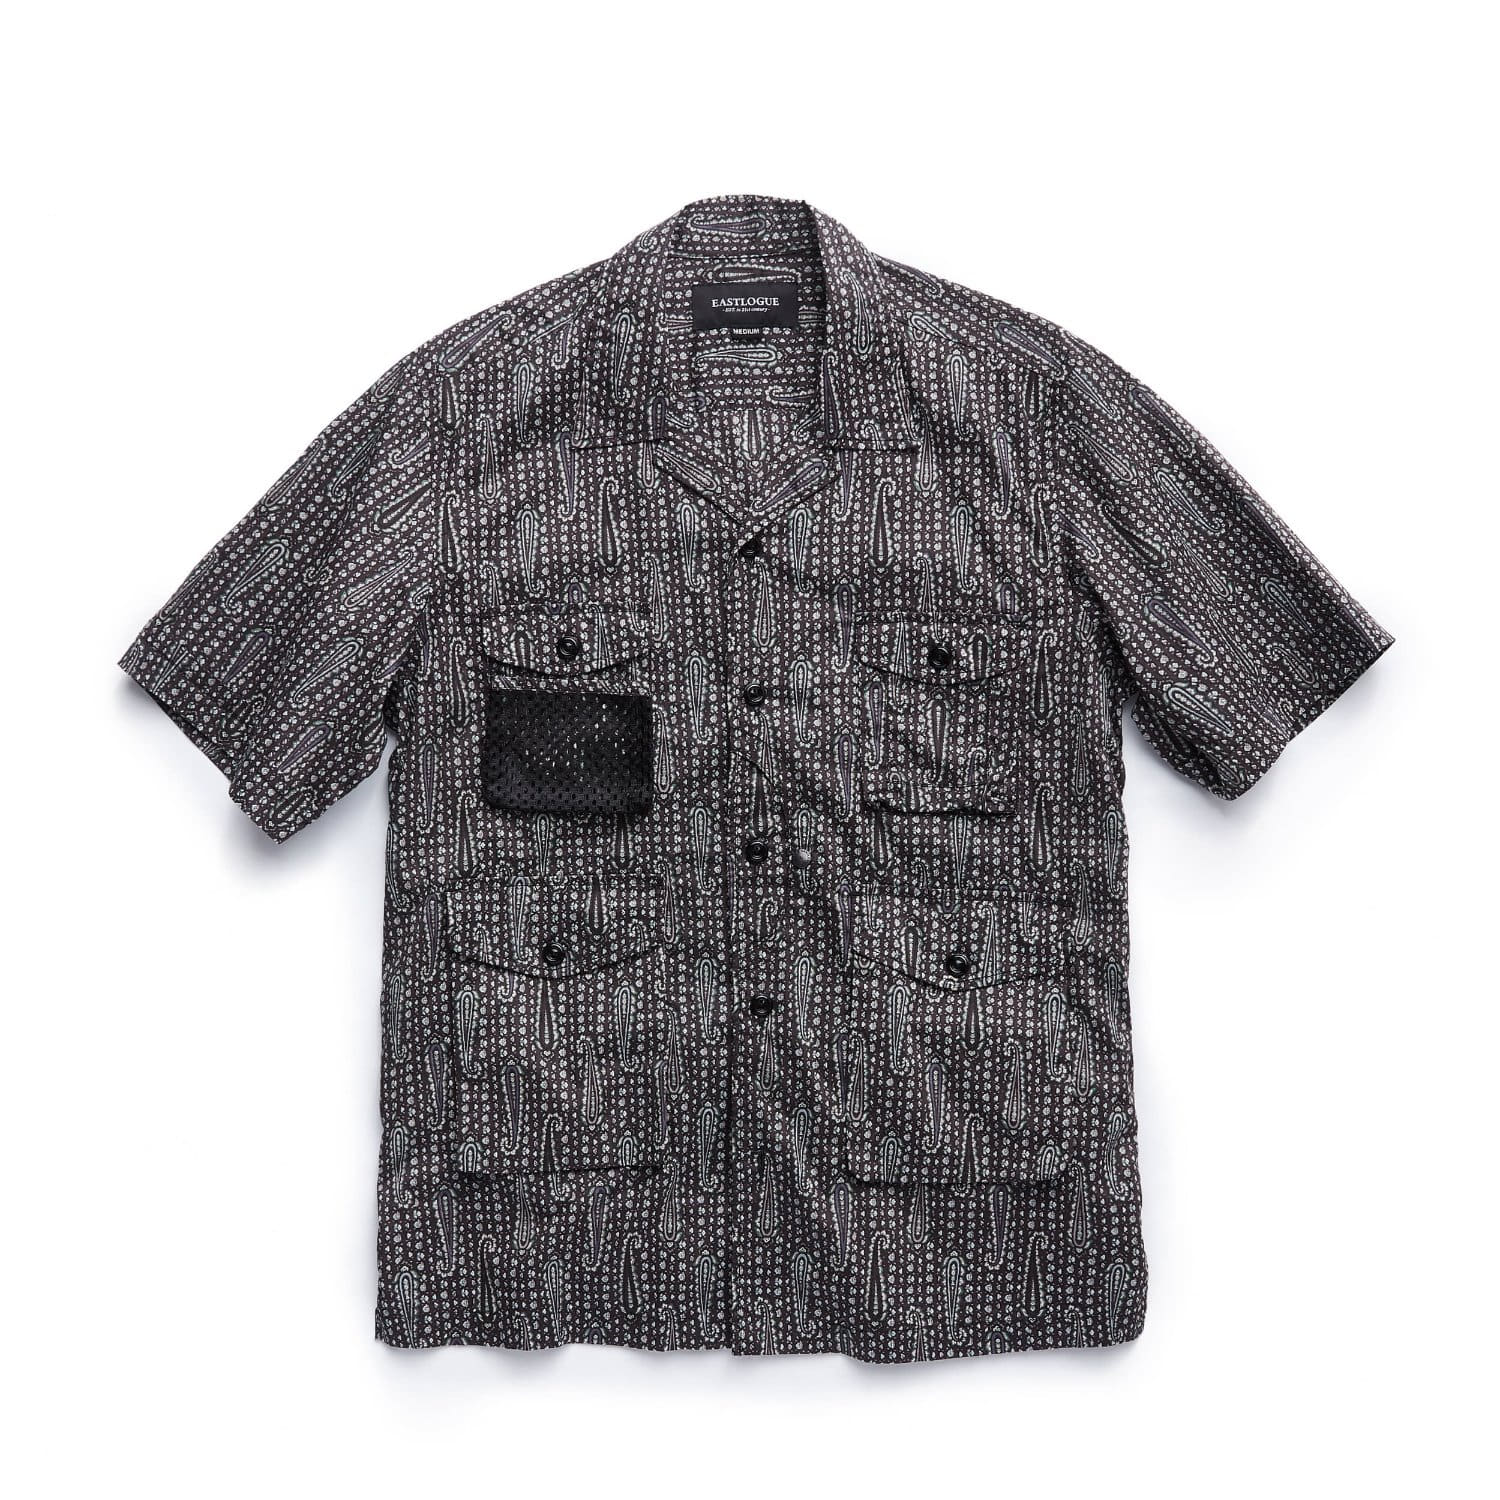 EASTLOGUE 4 Pocket Utility Half Shirts (Black Paisley)